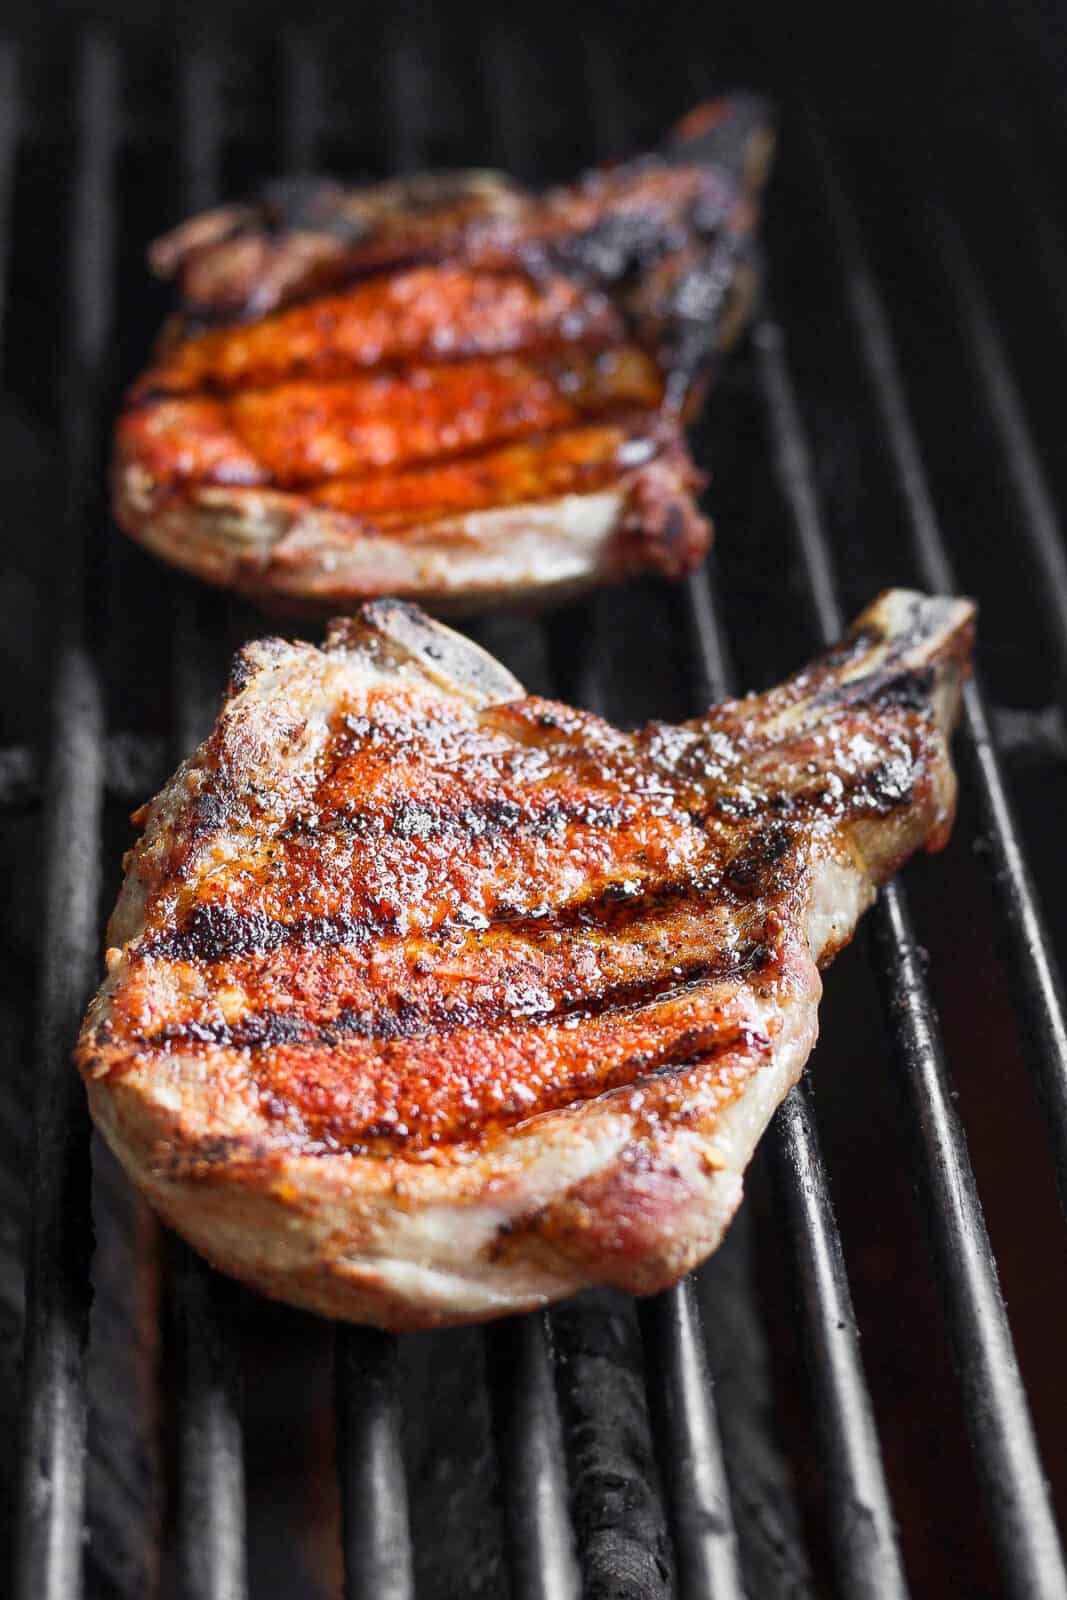 Pork chops cooking on the grill.